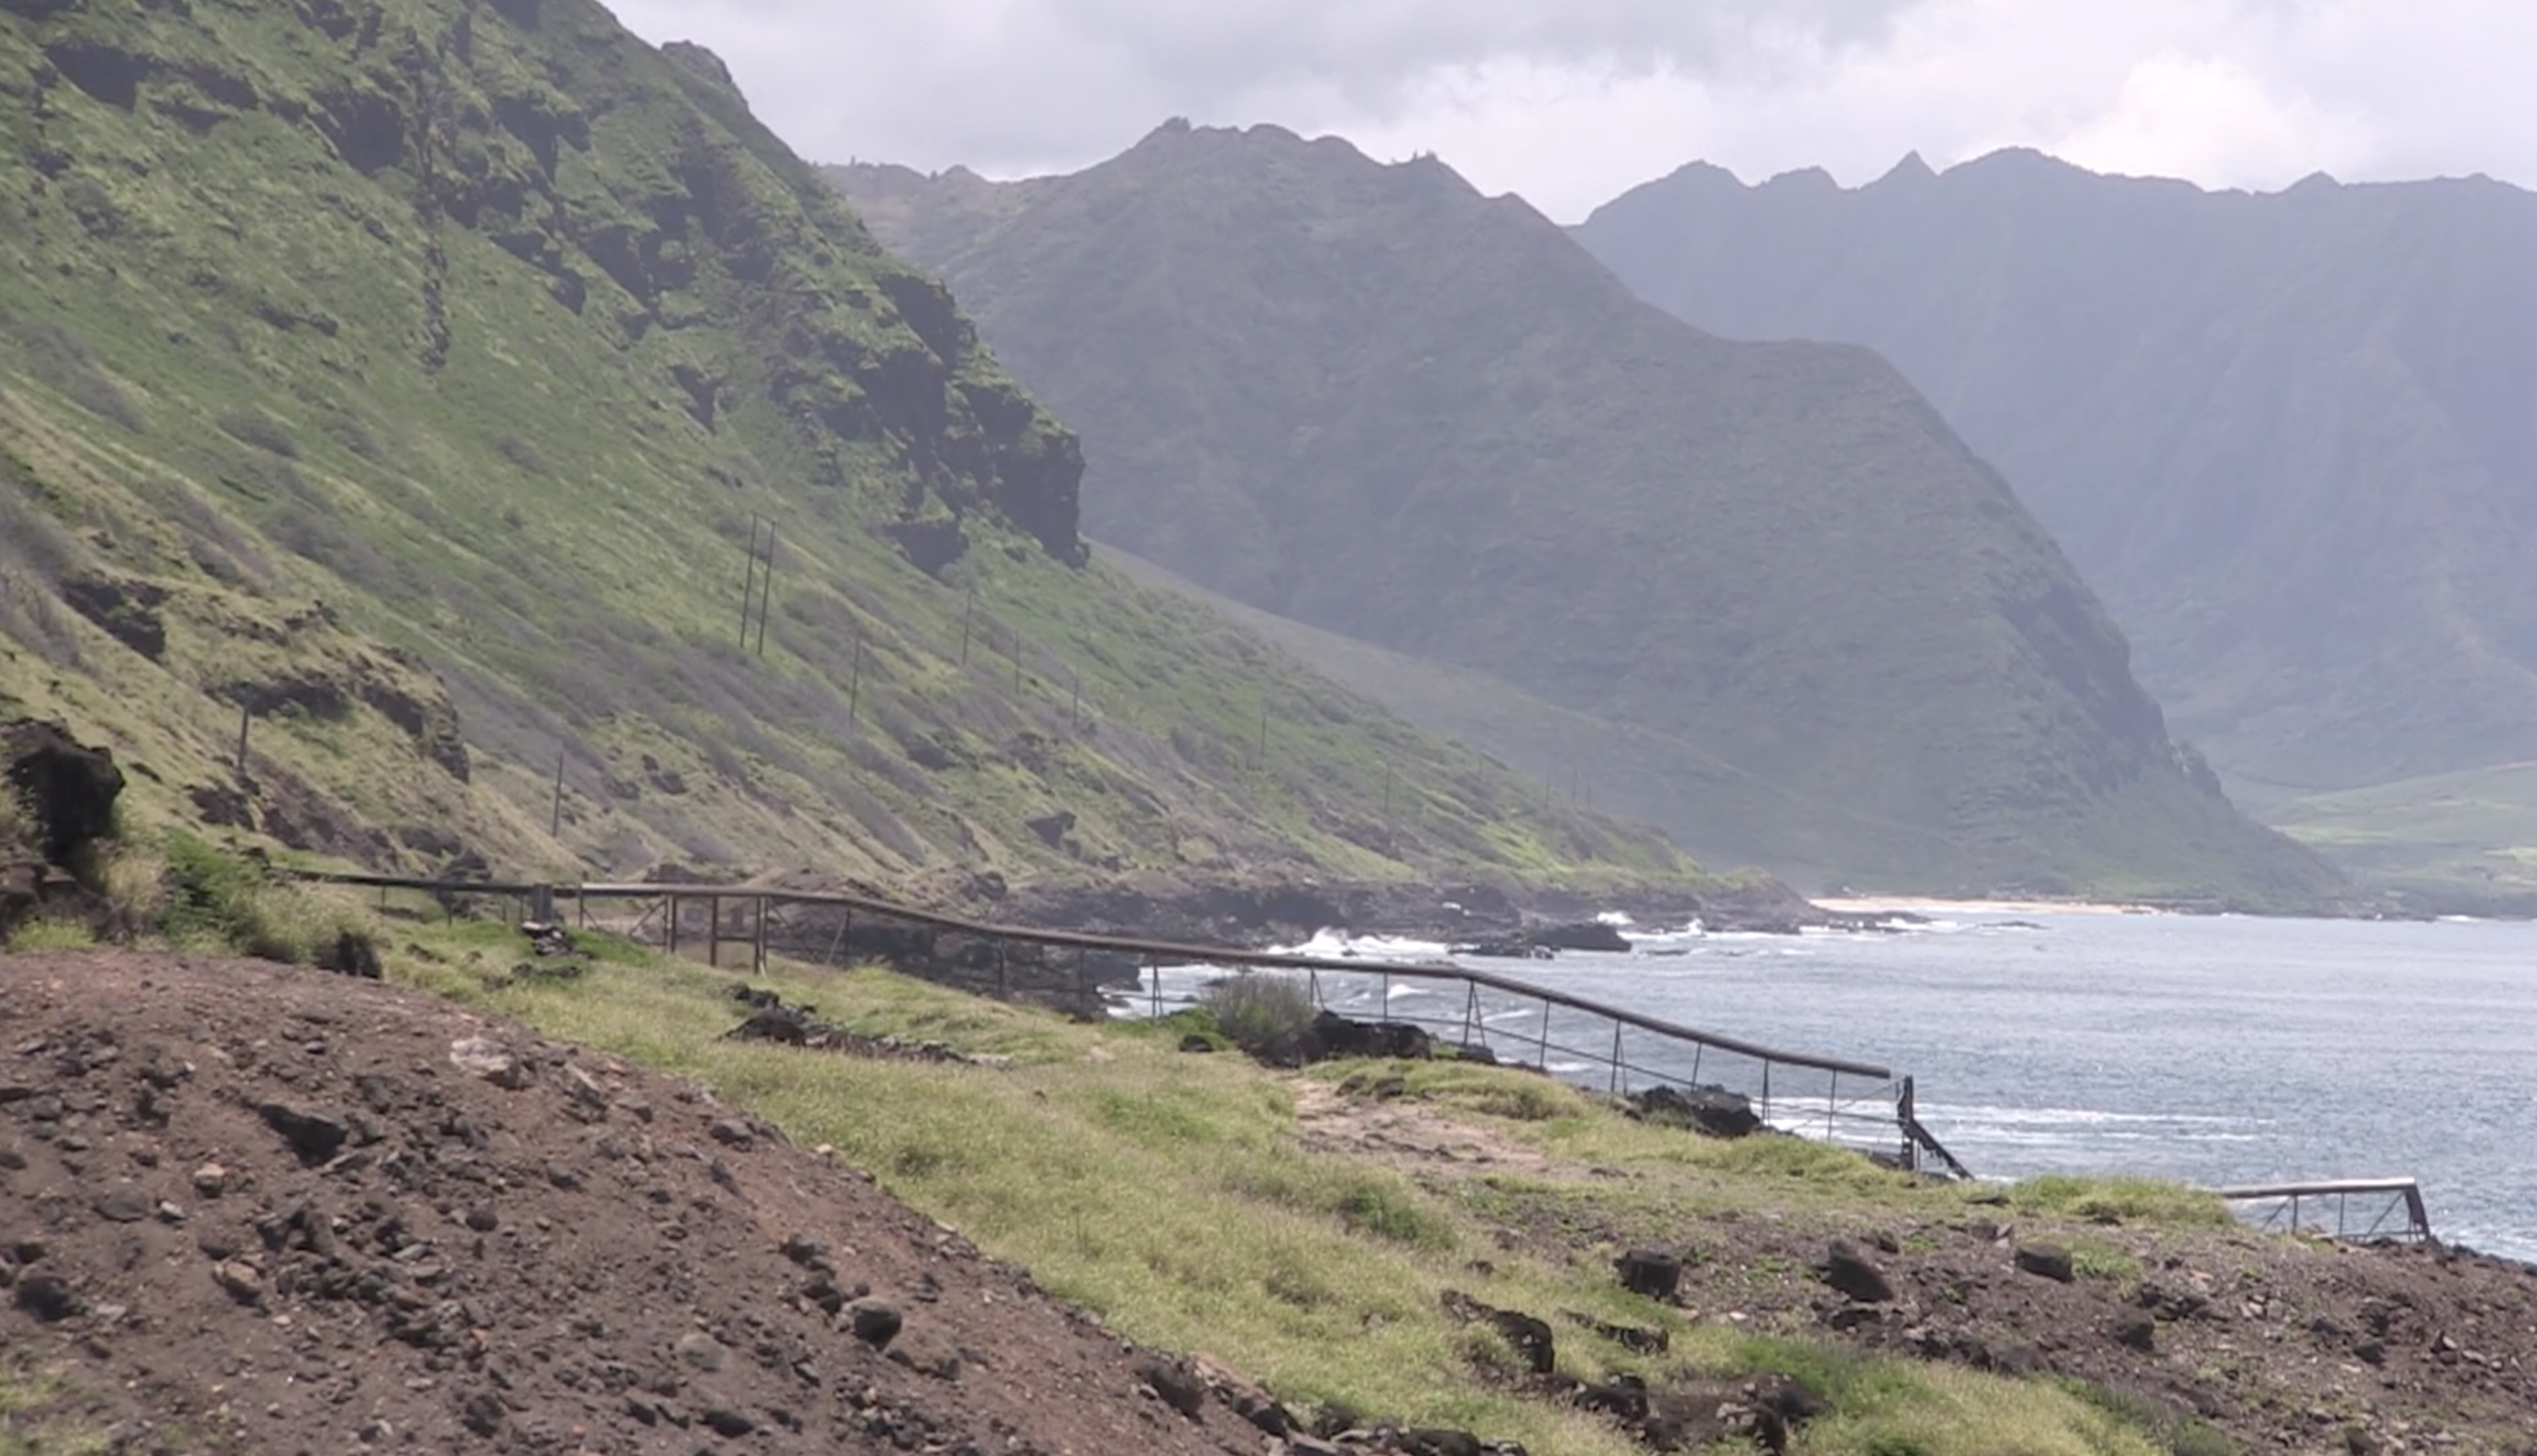 Legislation Pursues Creation of First National Heritage Areas in Hawai'i